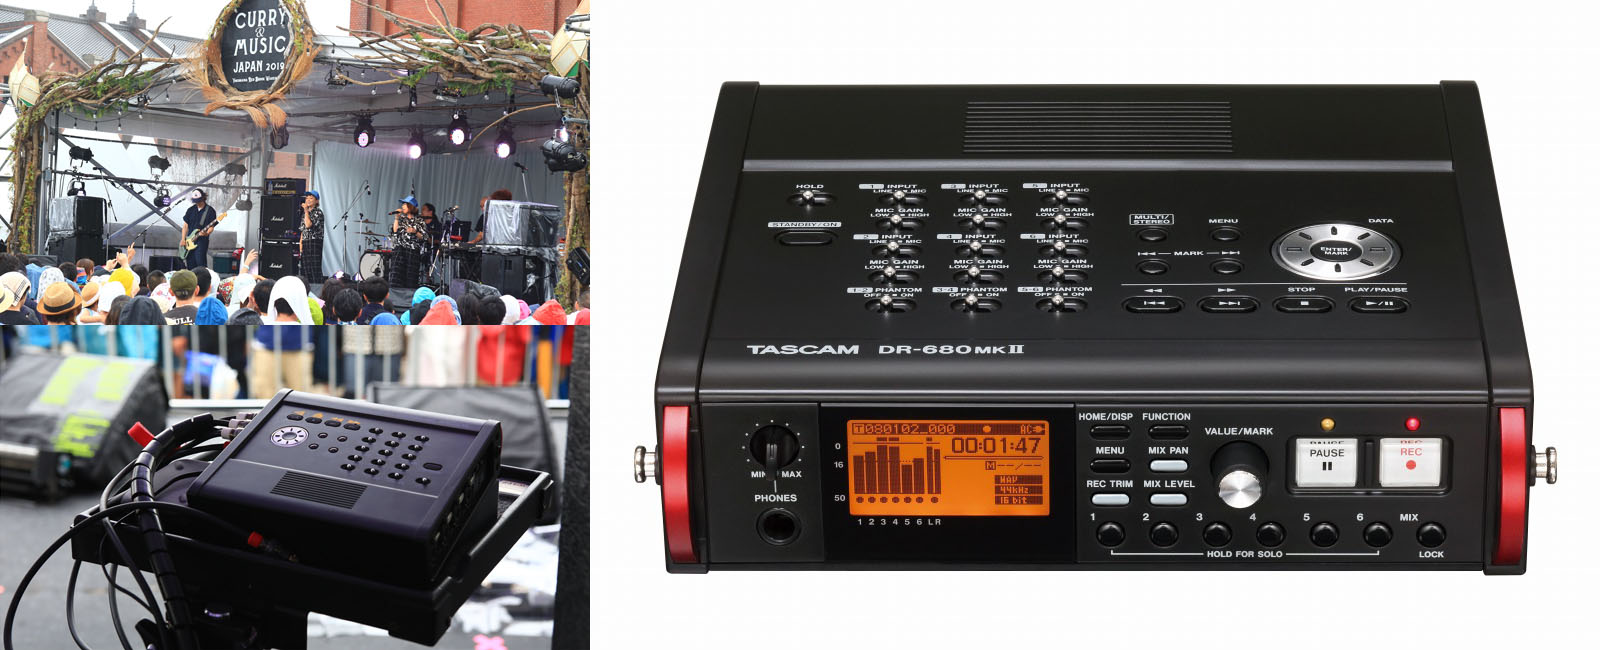 TASCAM DR-680MKII field recorder used for click/backing track playback